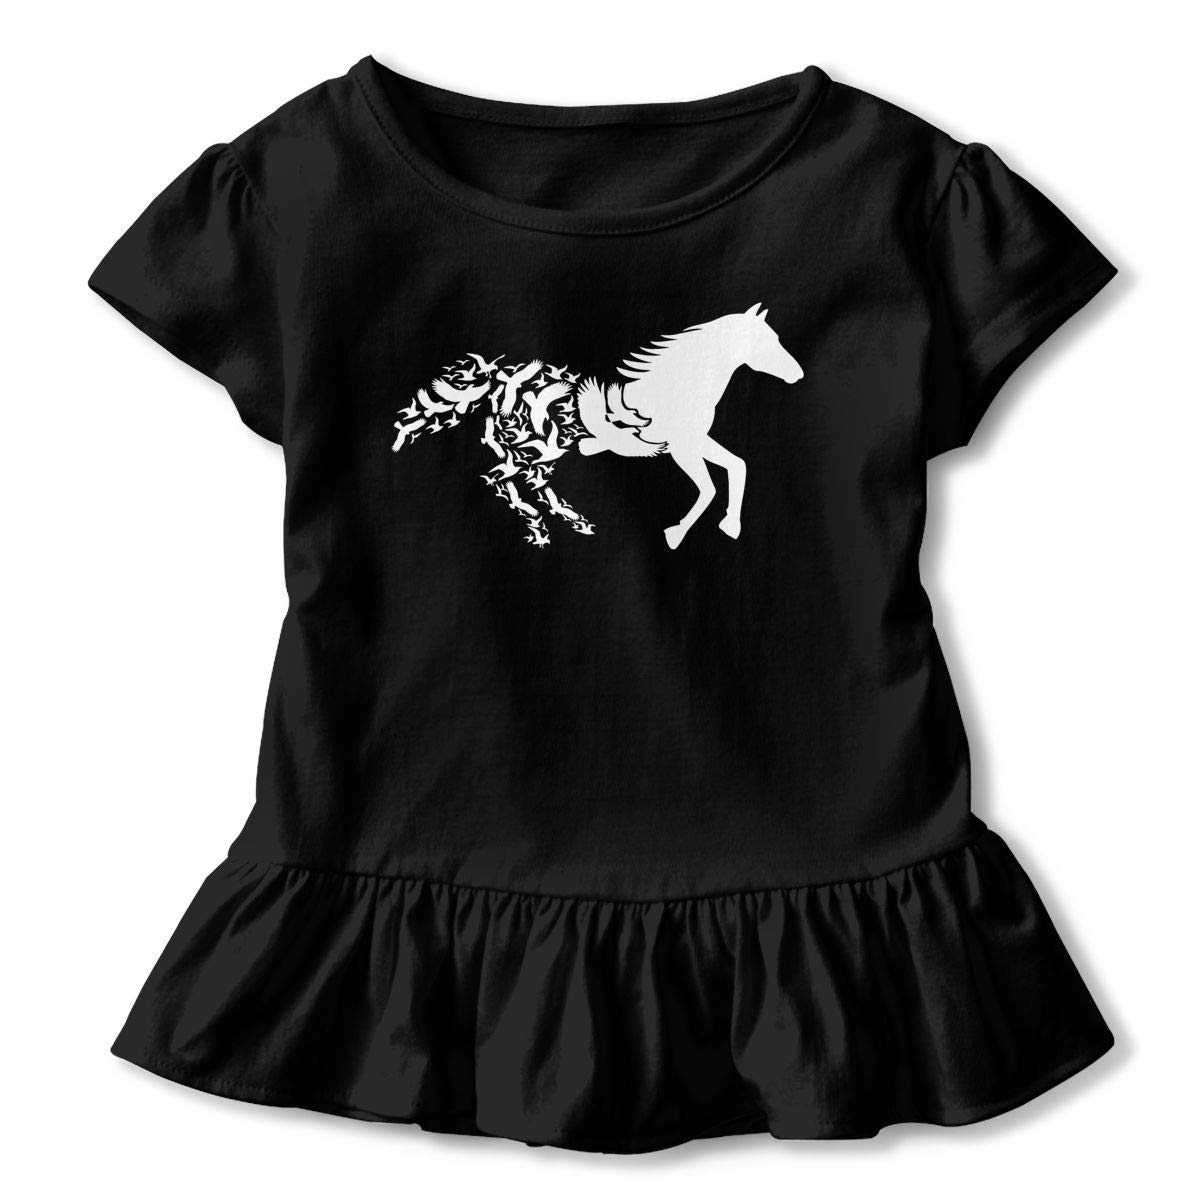 2-6T Girls Short Sleeve Black Horse Silhouette with Flying Birds T-Shirts Casual Tunic Shirt Dress with Flounces